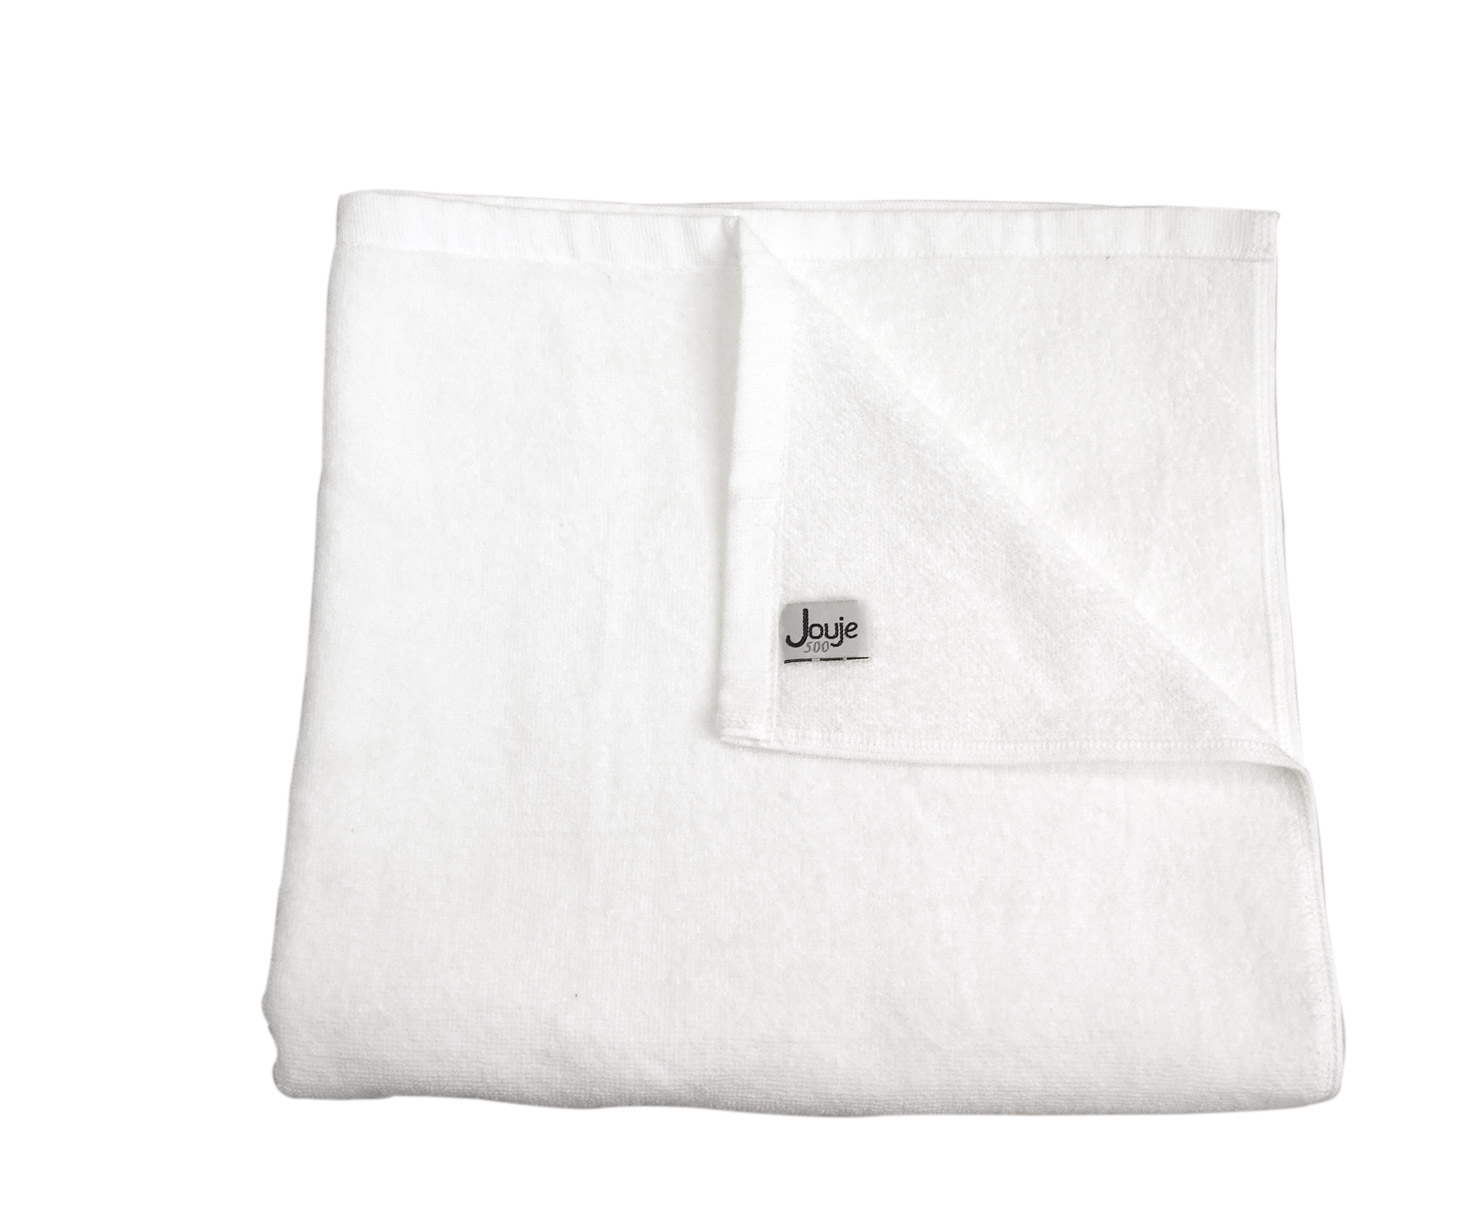 JOUJE 500 Bath Towel 70cmx130cm PACK OF5